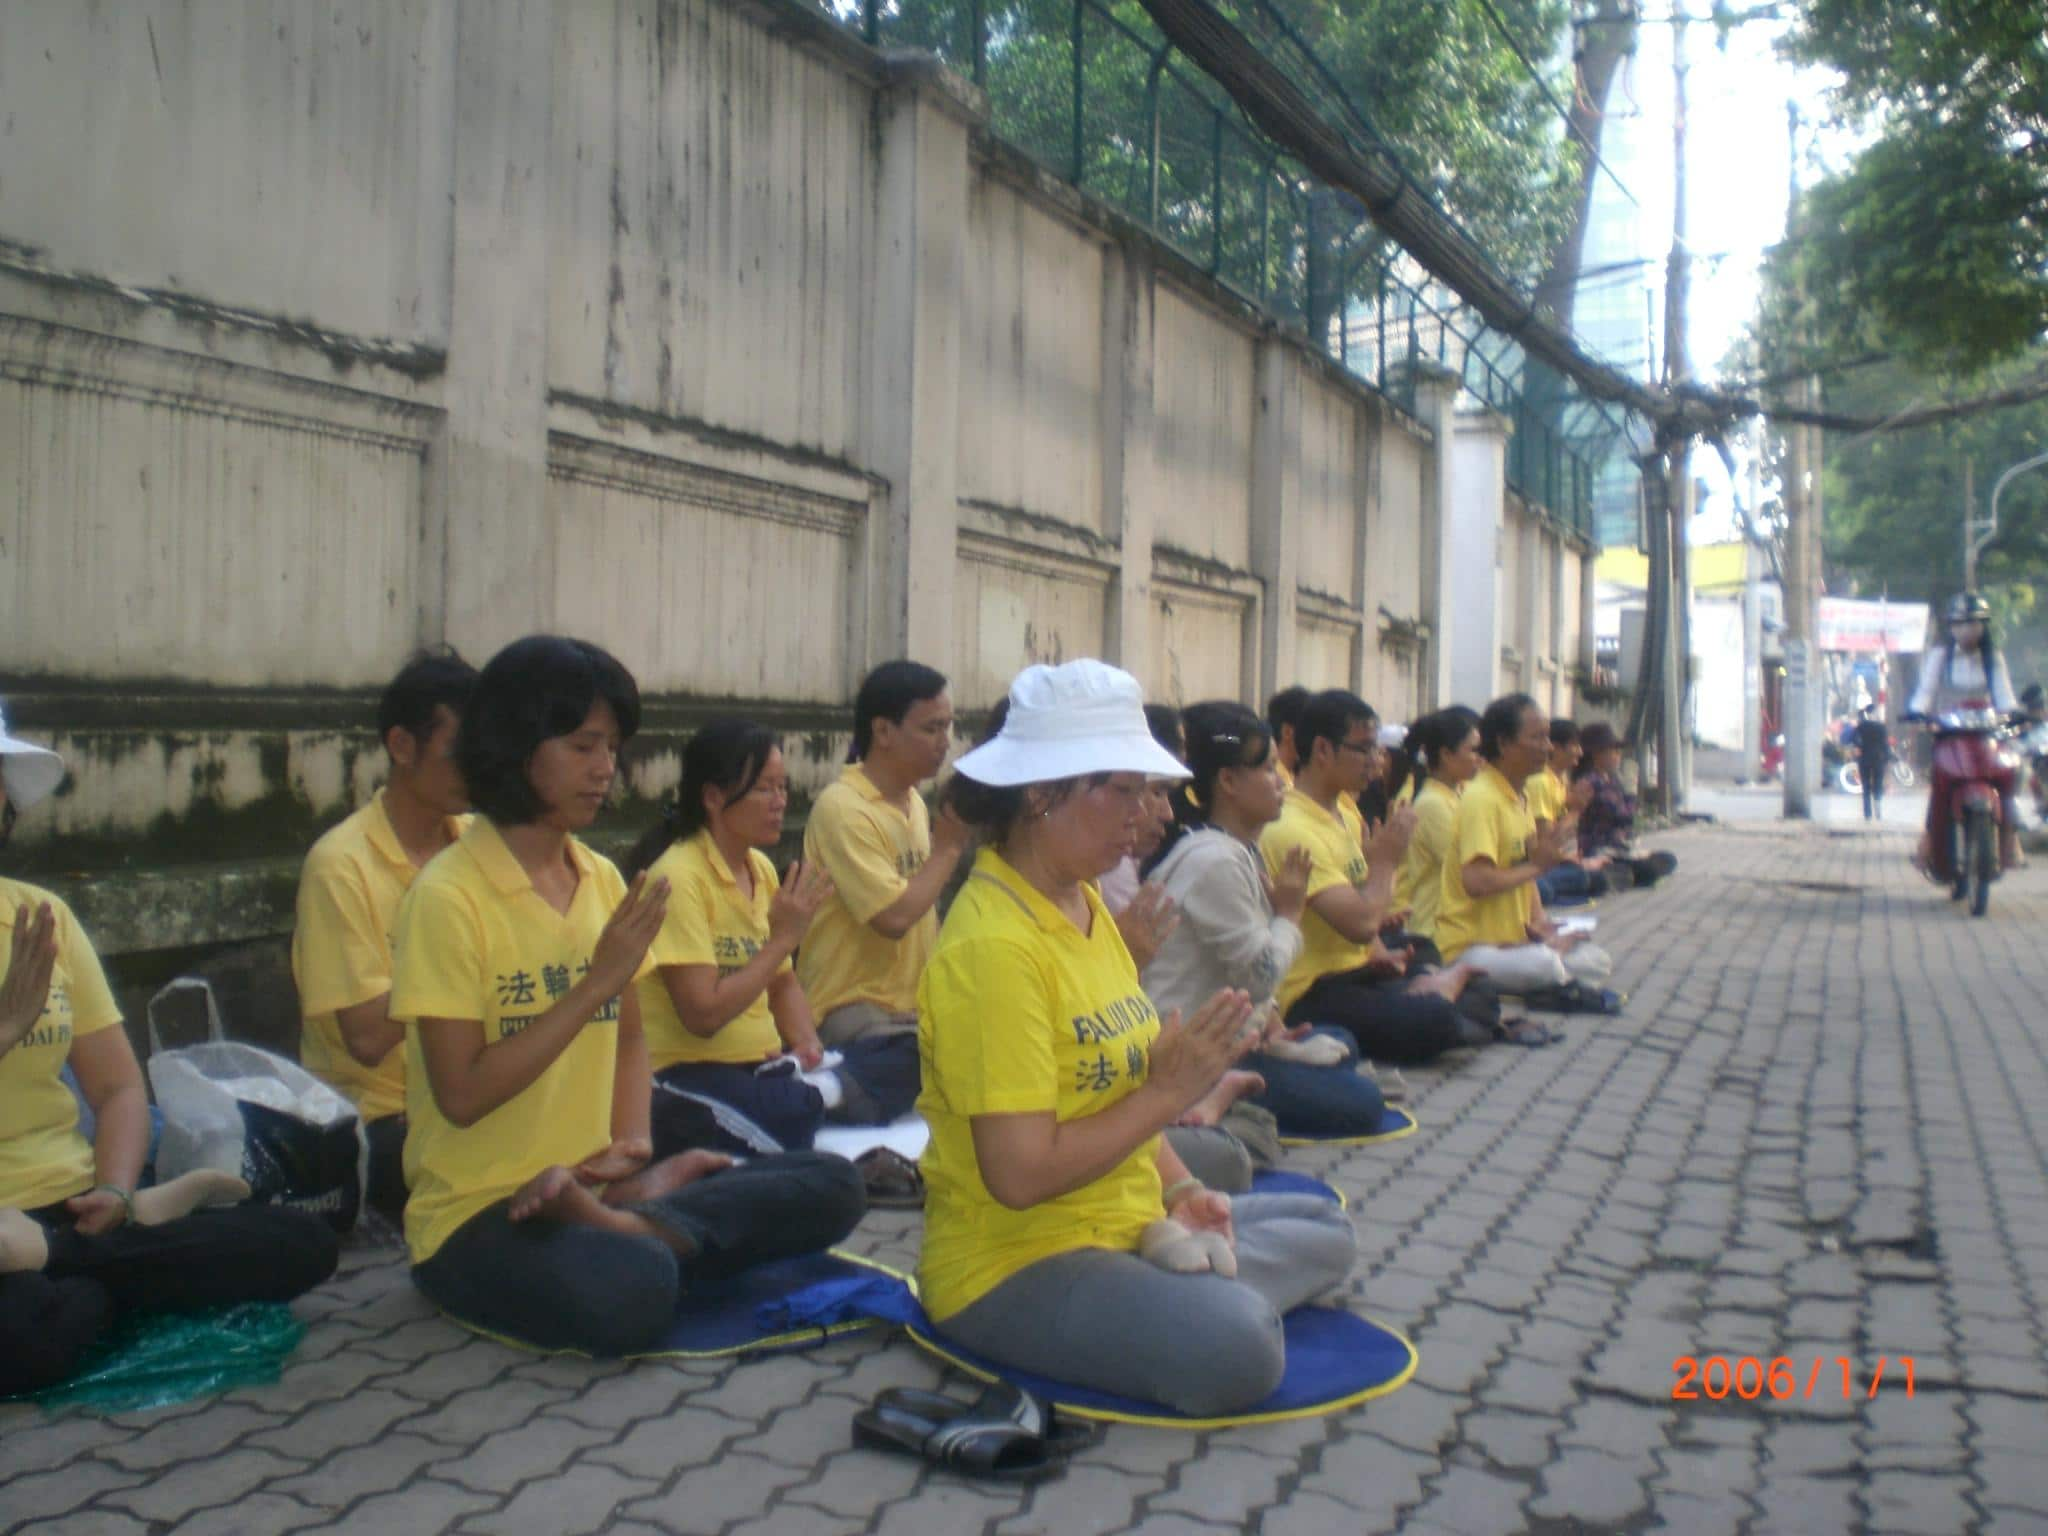 Falun Gong practitioners holding a sit-in in front of the Chinese consulate in Hanoi on October 6. Soon after this photo was taken, Vietnamese authorities forcibly detained over 30 of the participants.